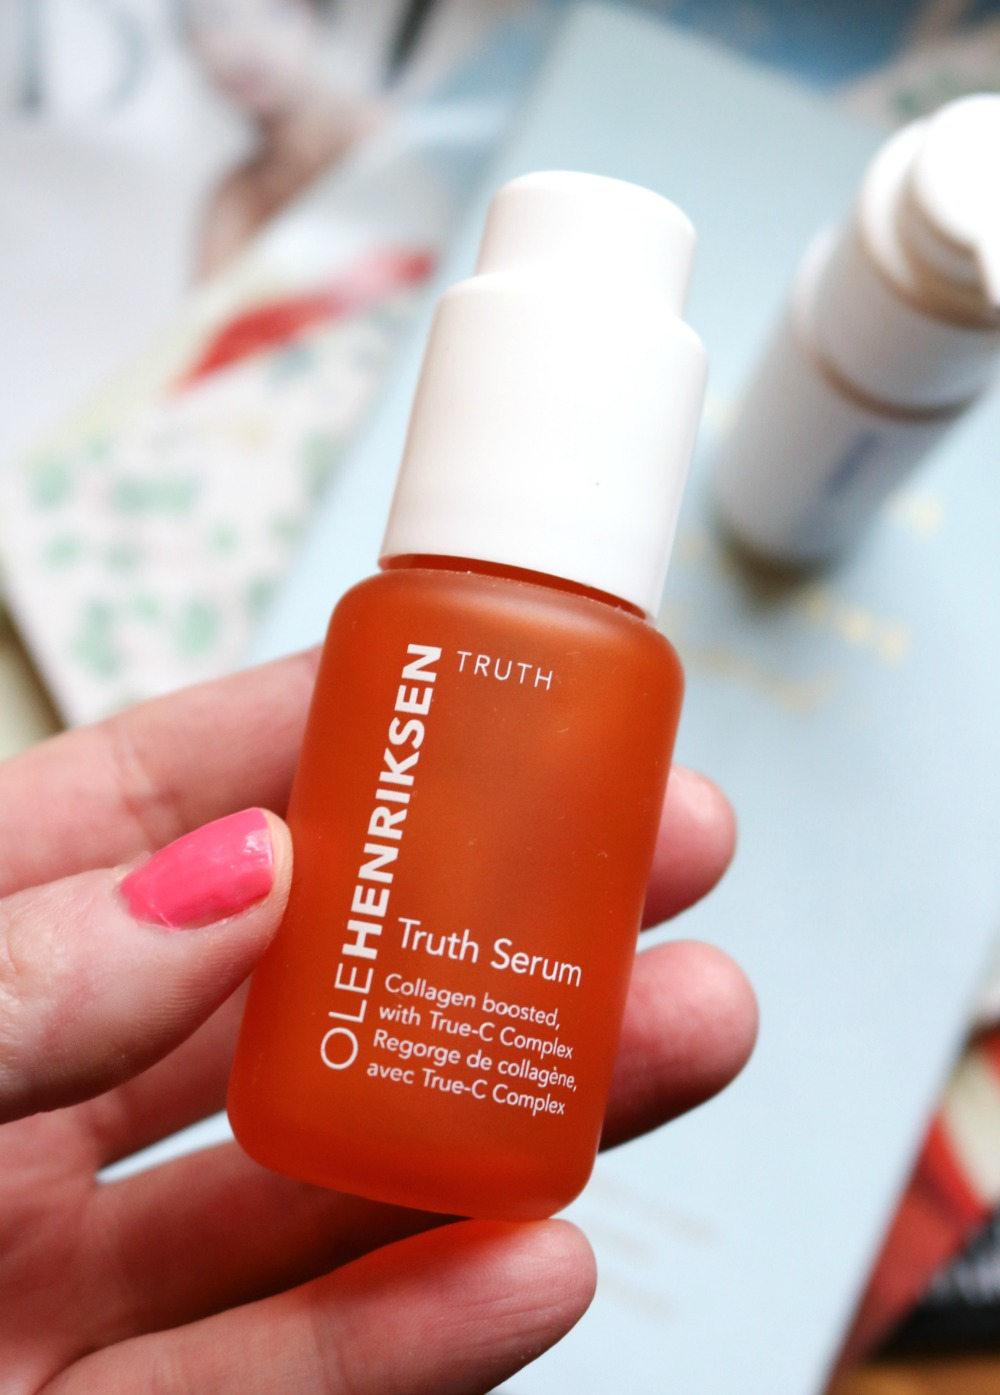 Ole Henriksen Serum Comparison I Truth Vitamin C Serum